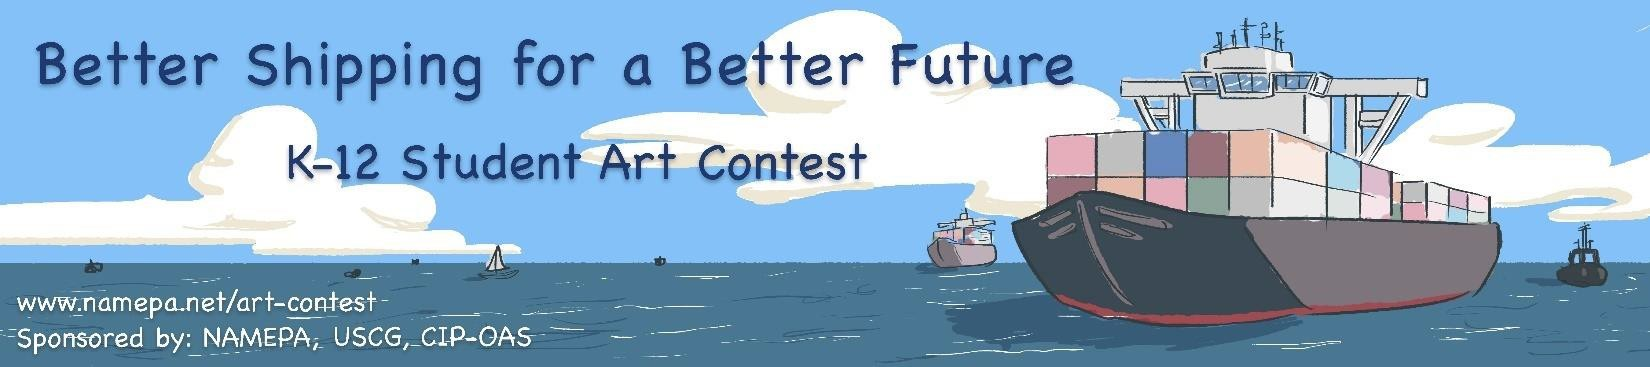 2018 Student Art Contest Flyer